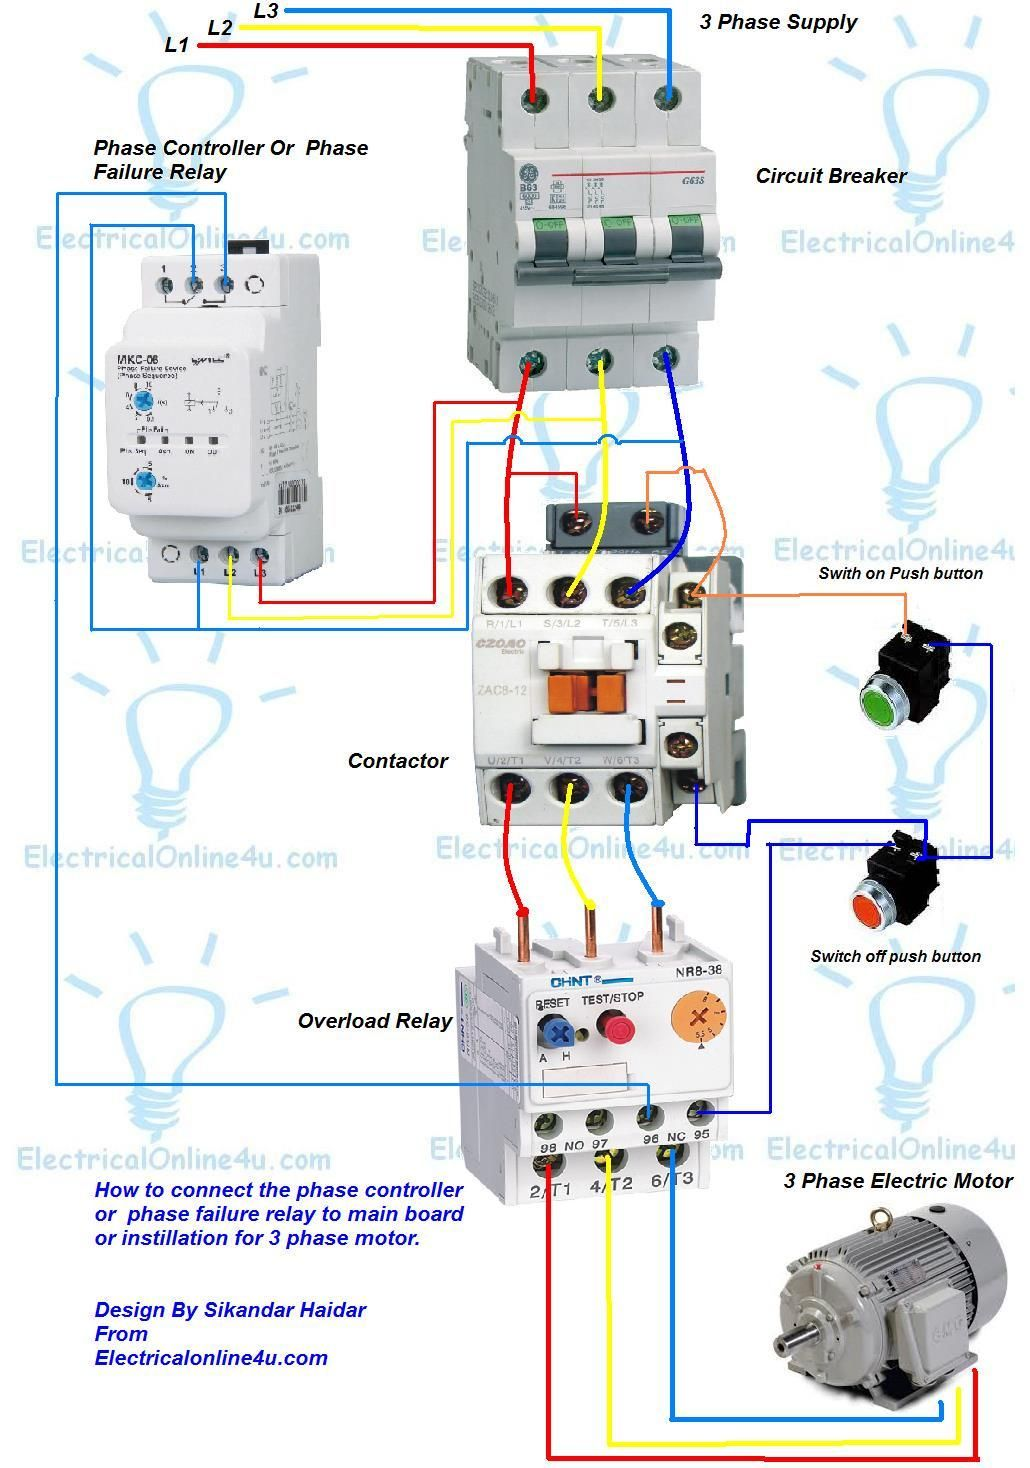 phase controller wiring phase failure relay diagram di on line 3 phase water pump control panel wiring diagram 3 phase control panel wiring [ 1030 x 1468 Pixel ]